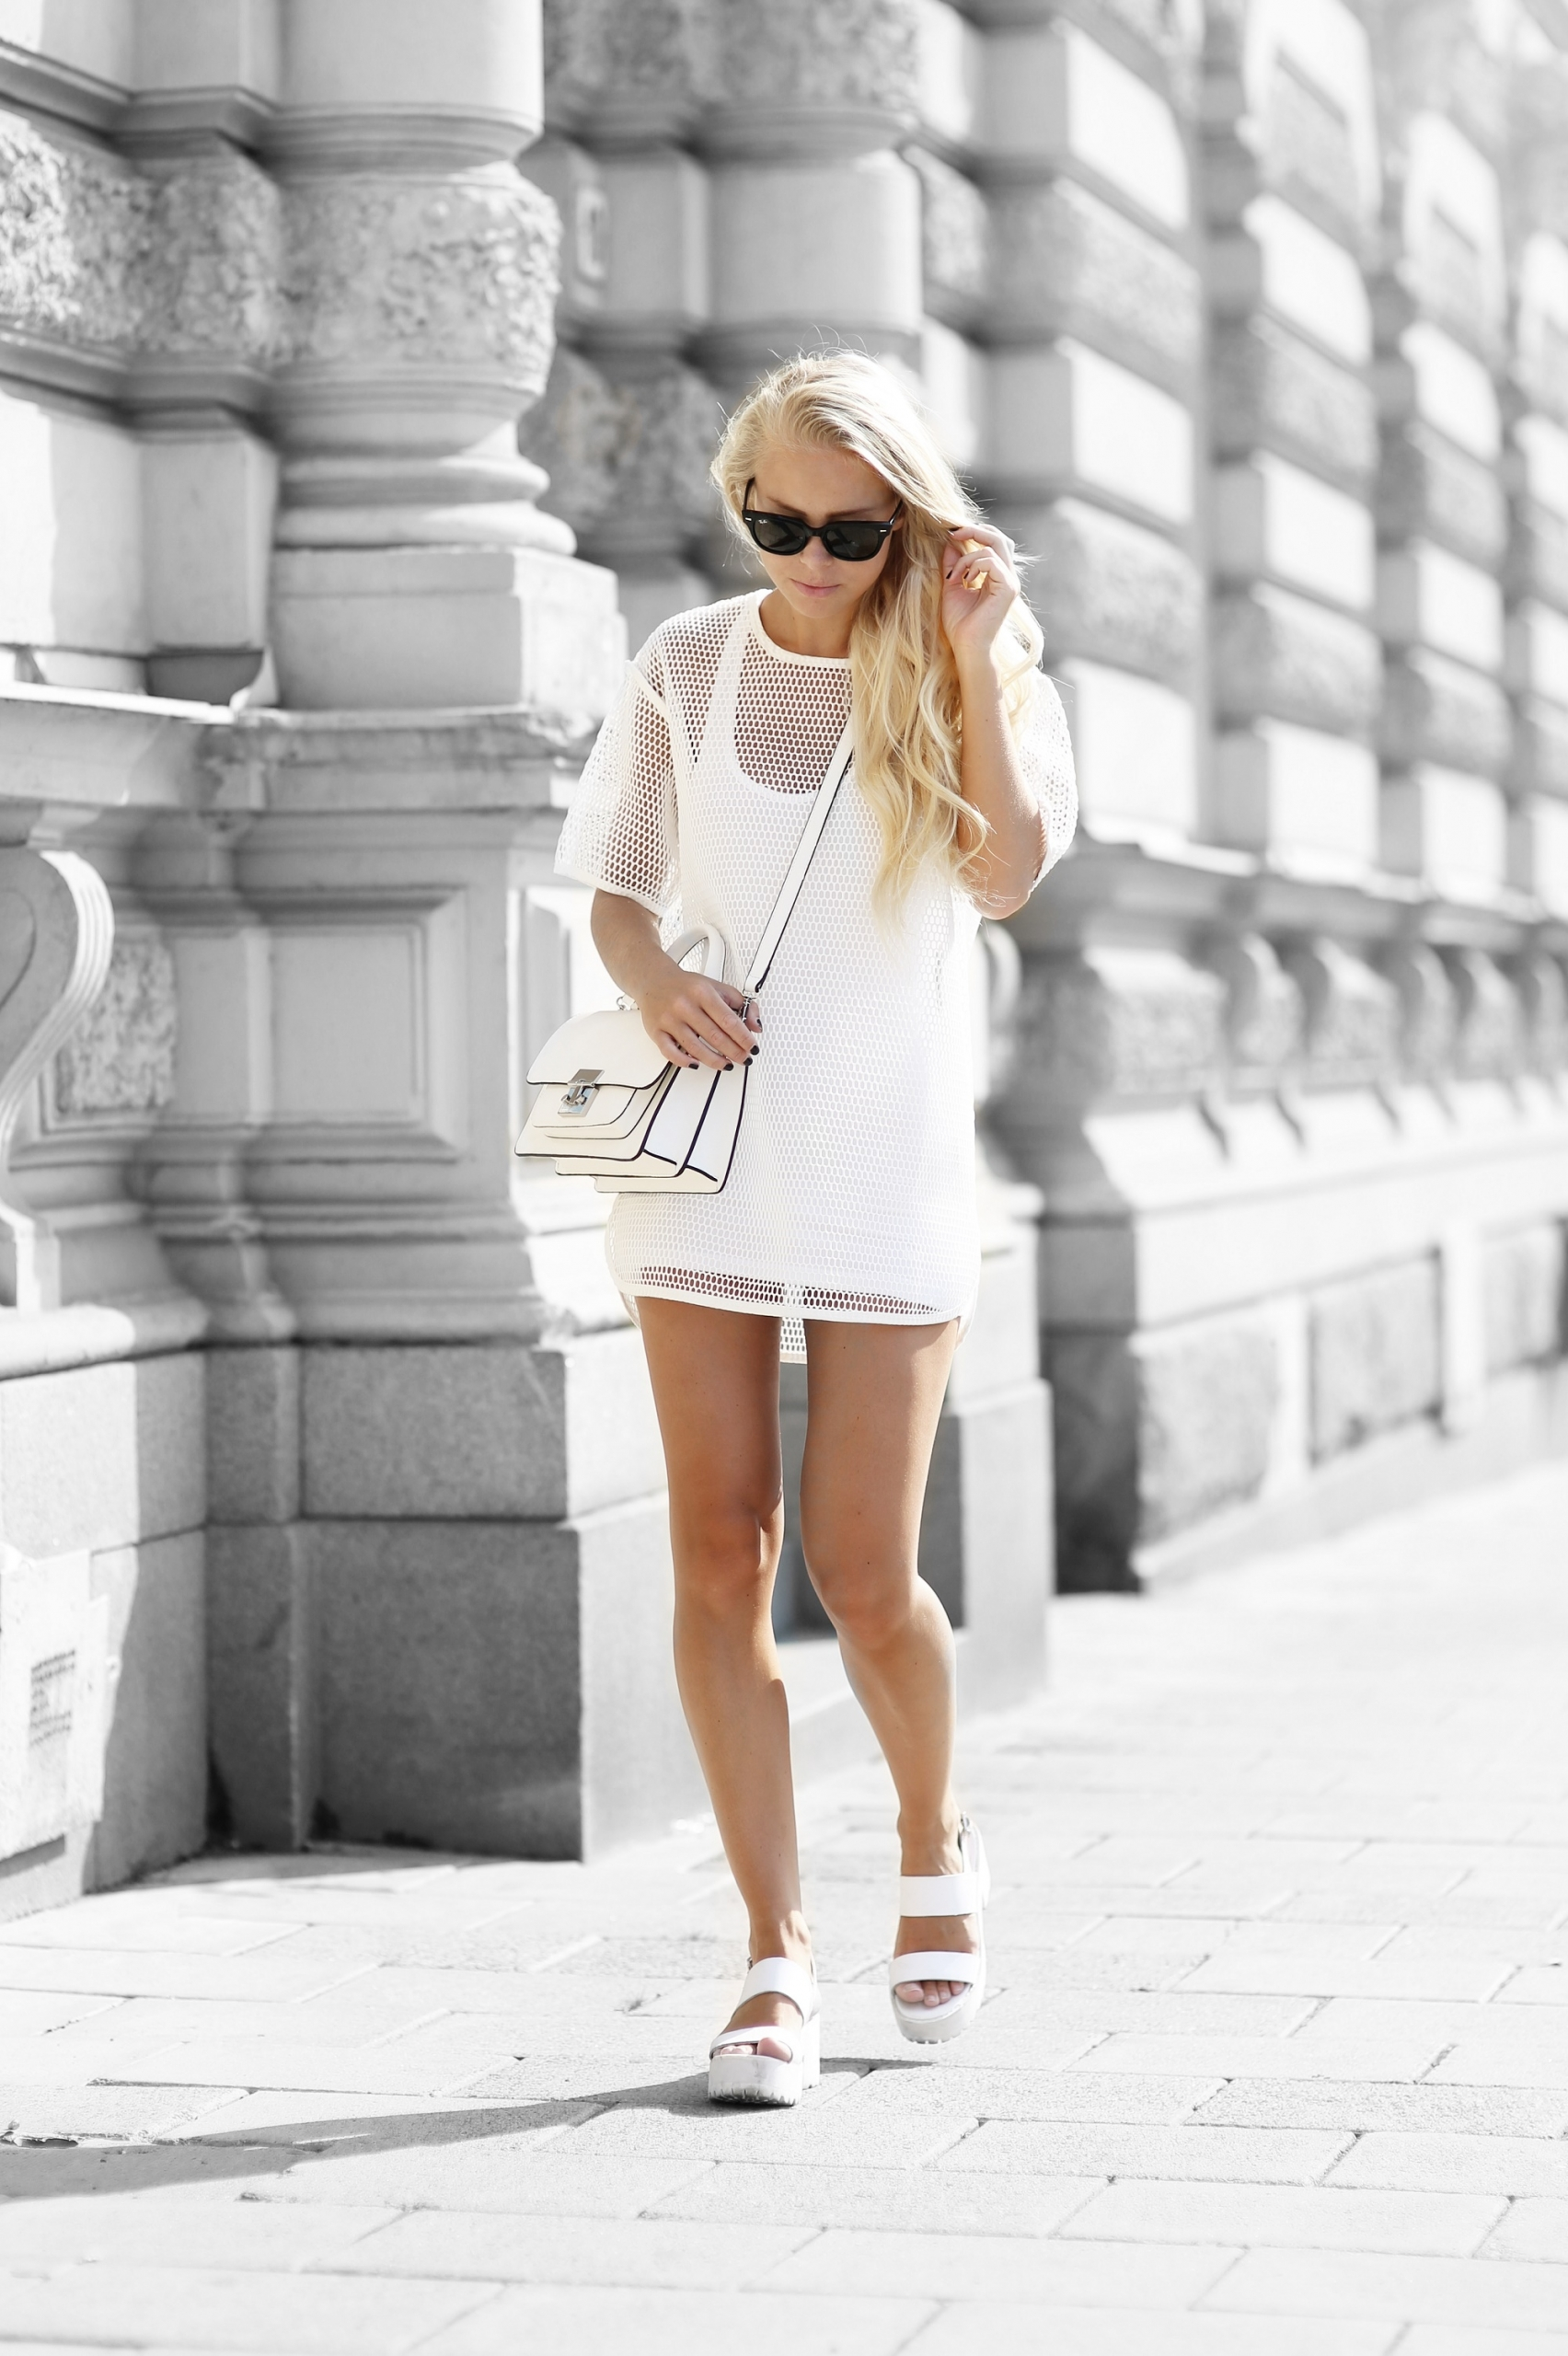 Victoria Tornegren is wearing shoes from River Island, white mesh dress from Front Row, bag from Zara and sunglasses from Ray Ban